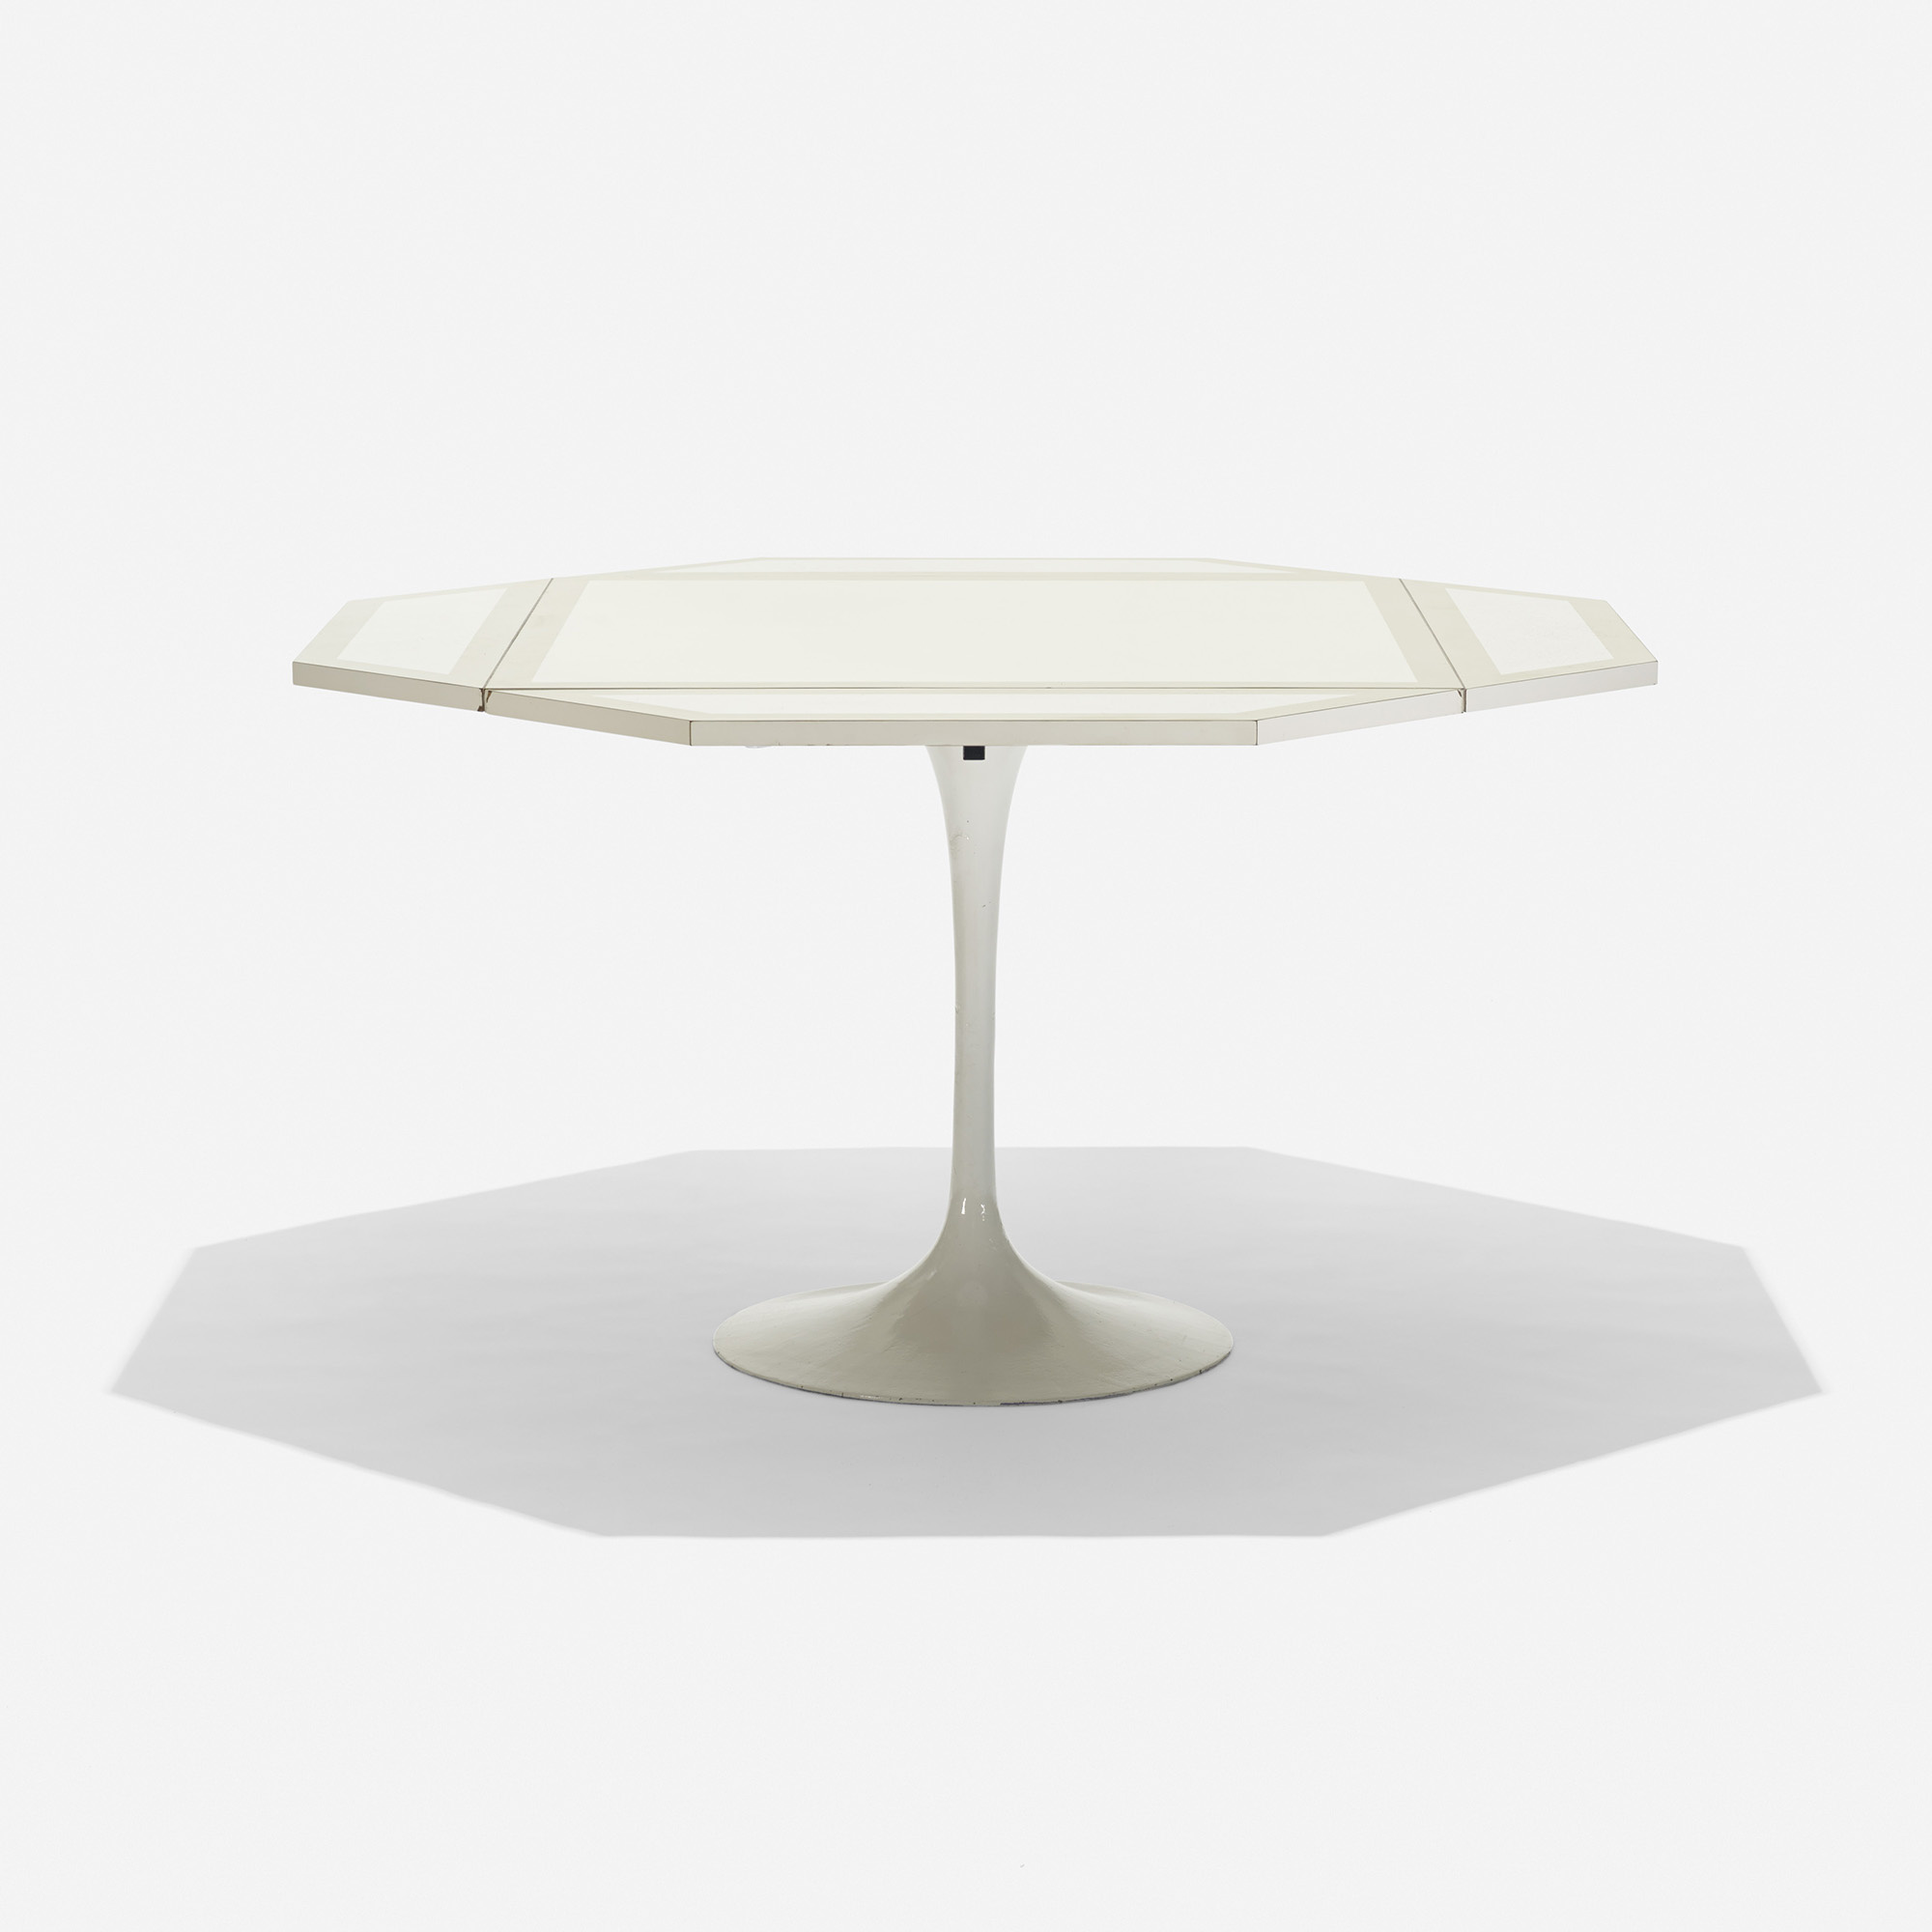 140 Alexander Girard dining table from the Dragon Peak House